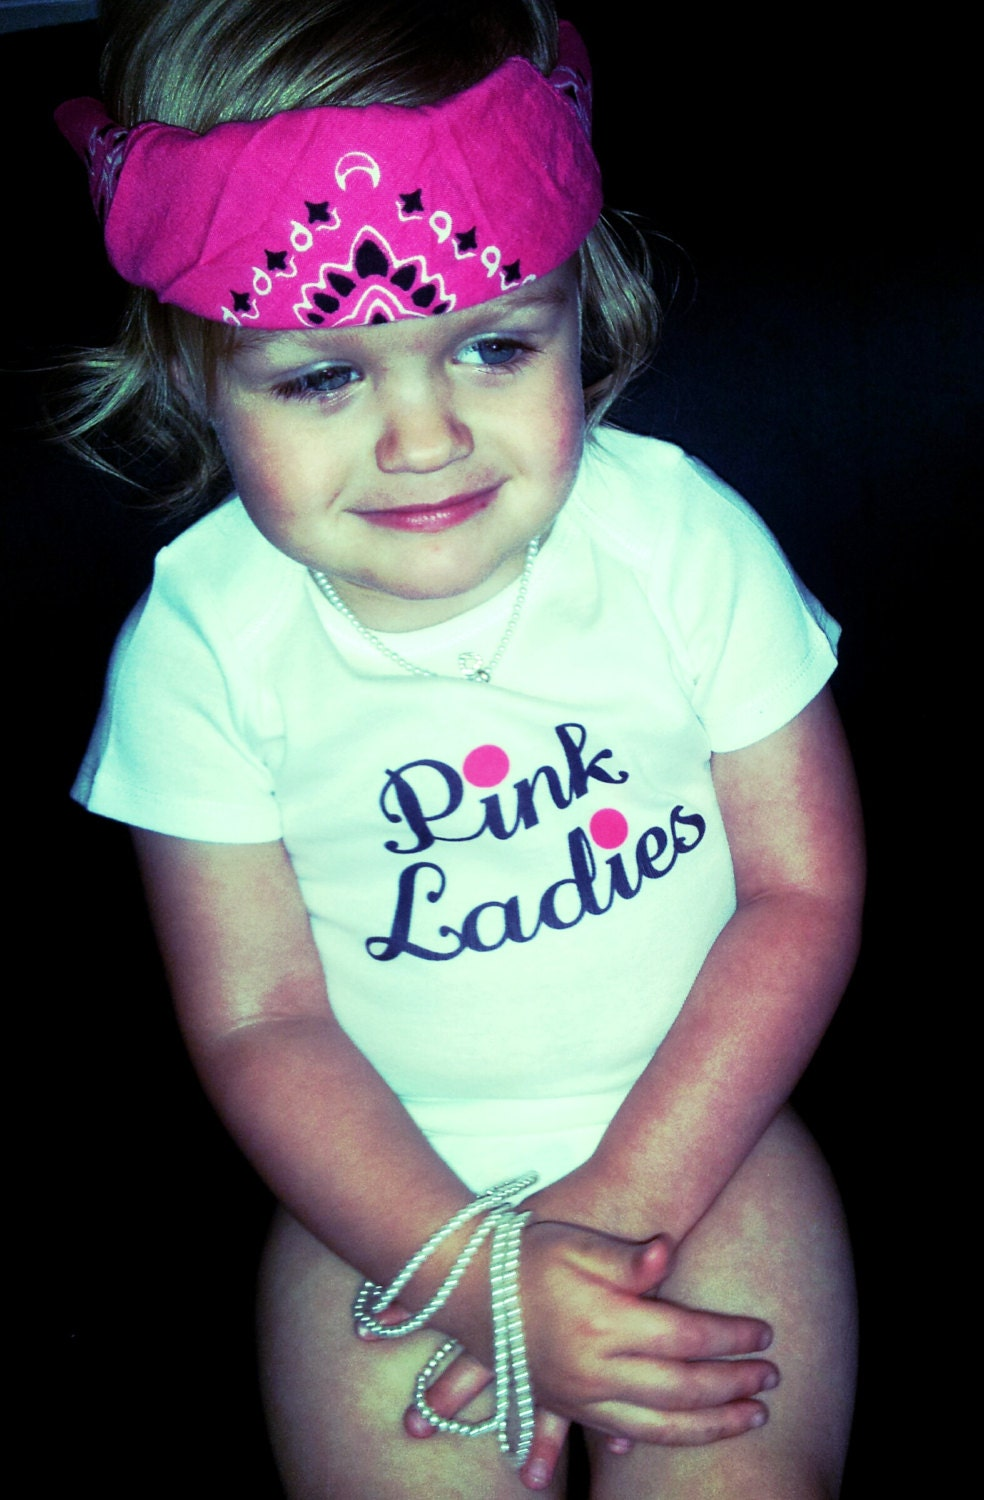 Danny zuko black t shirt - Grease Pink Ladies Pink Ladies Grease Funny Baby Clothes 50s Party Grease